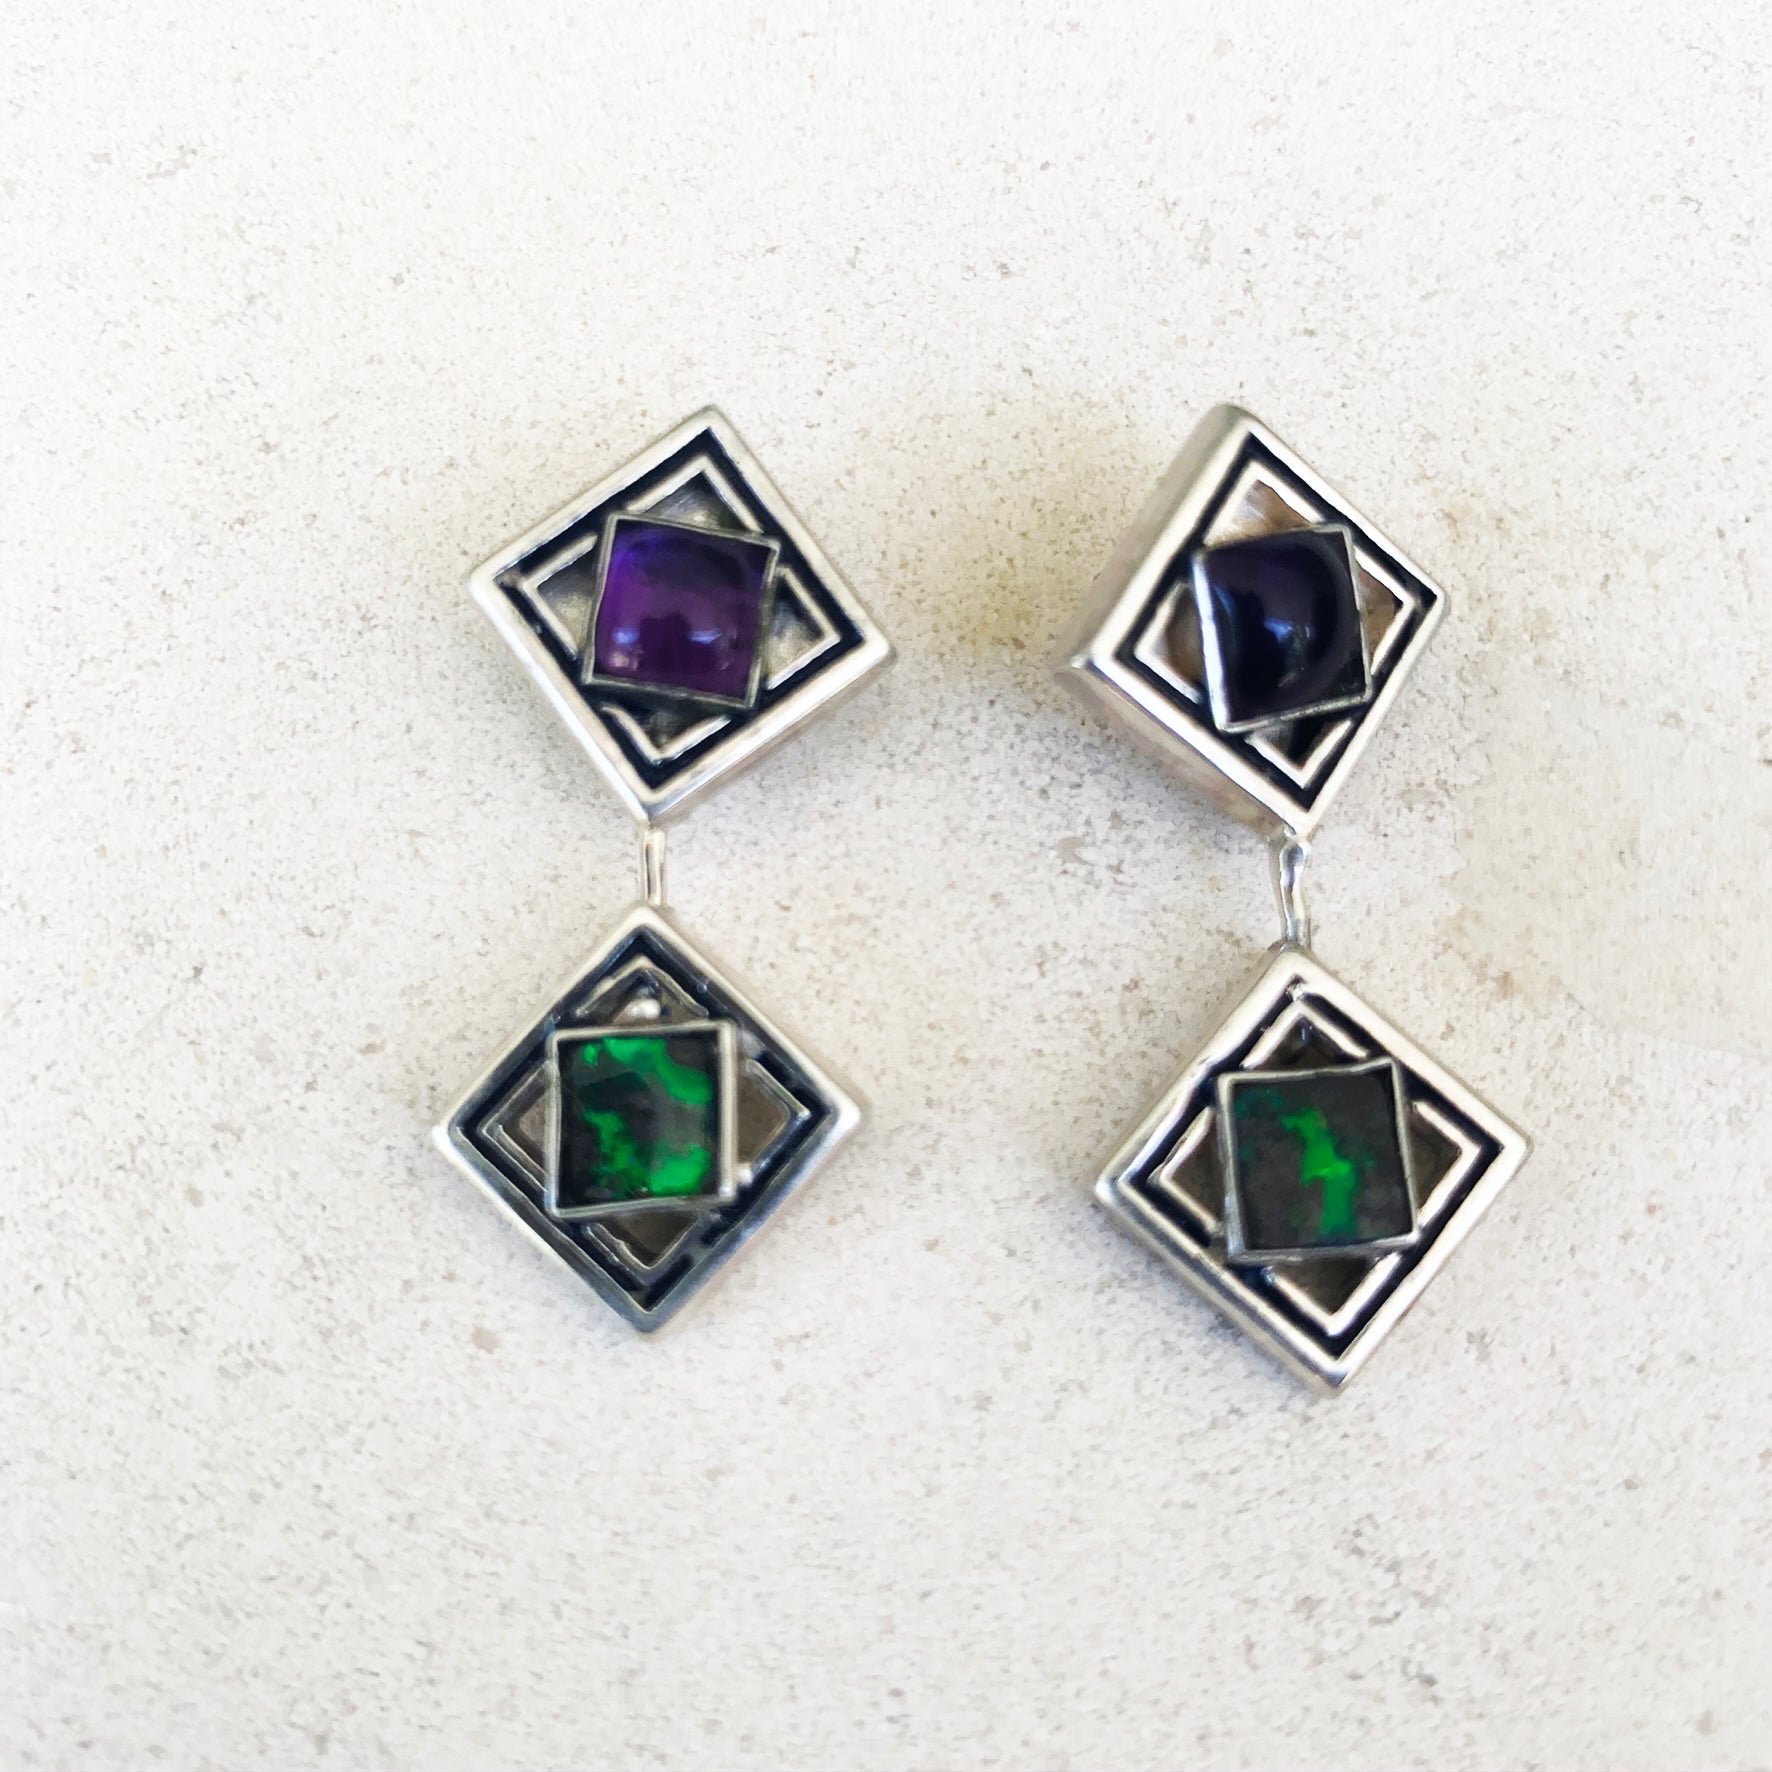 Green boulder opal and amethyst Giometria earrings